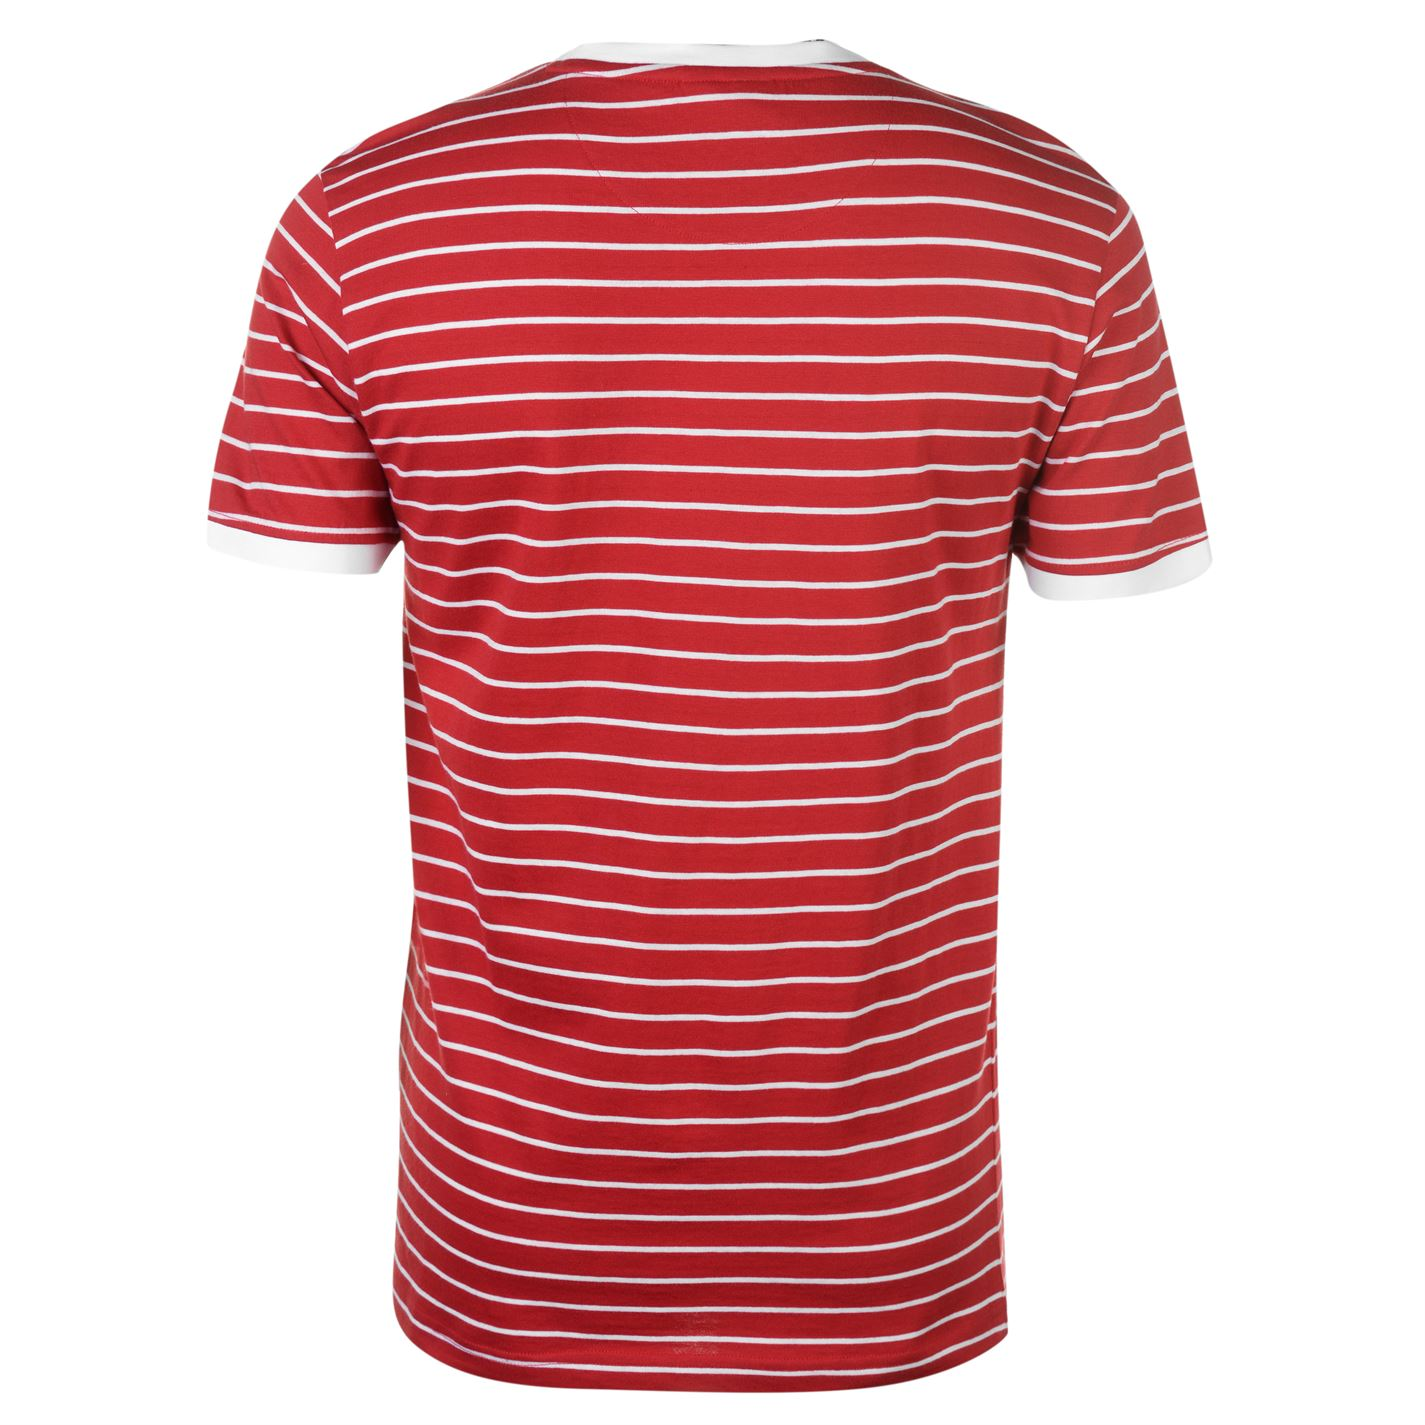 Pierre-Cardin-Mens-Stripe-Ringer-T-Shirt-Crew-Neck-Tee-Top-Short-Sleeve-Cotton thumbnail 9